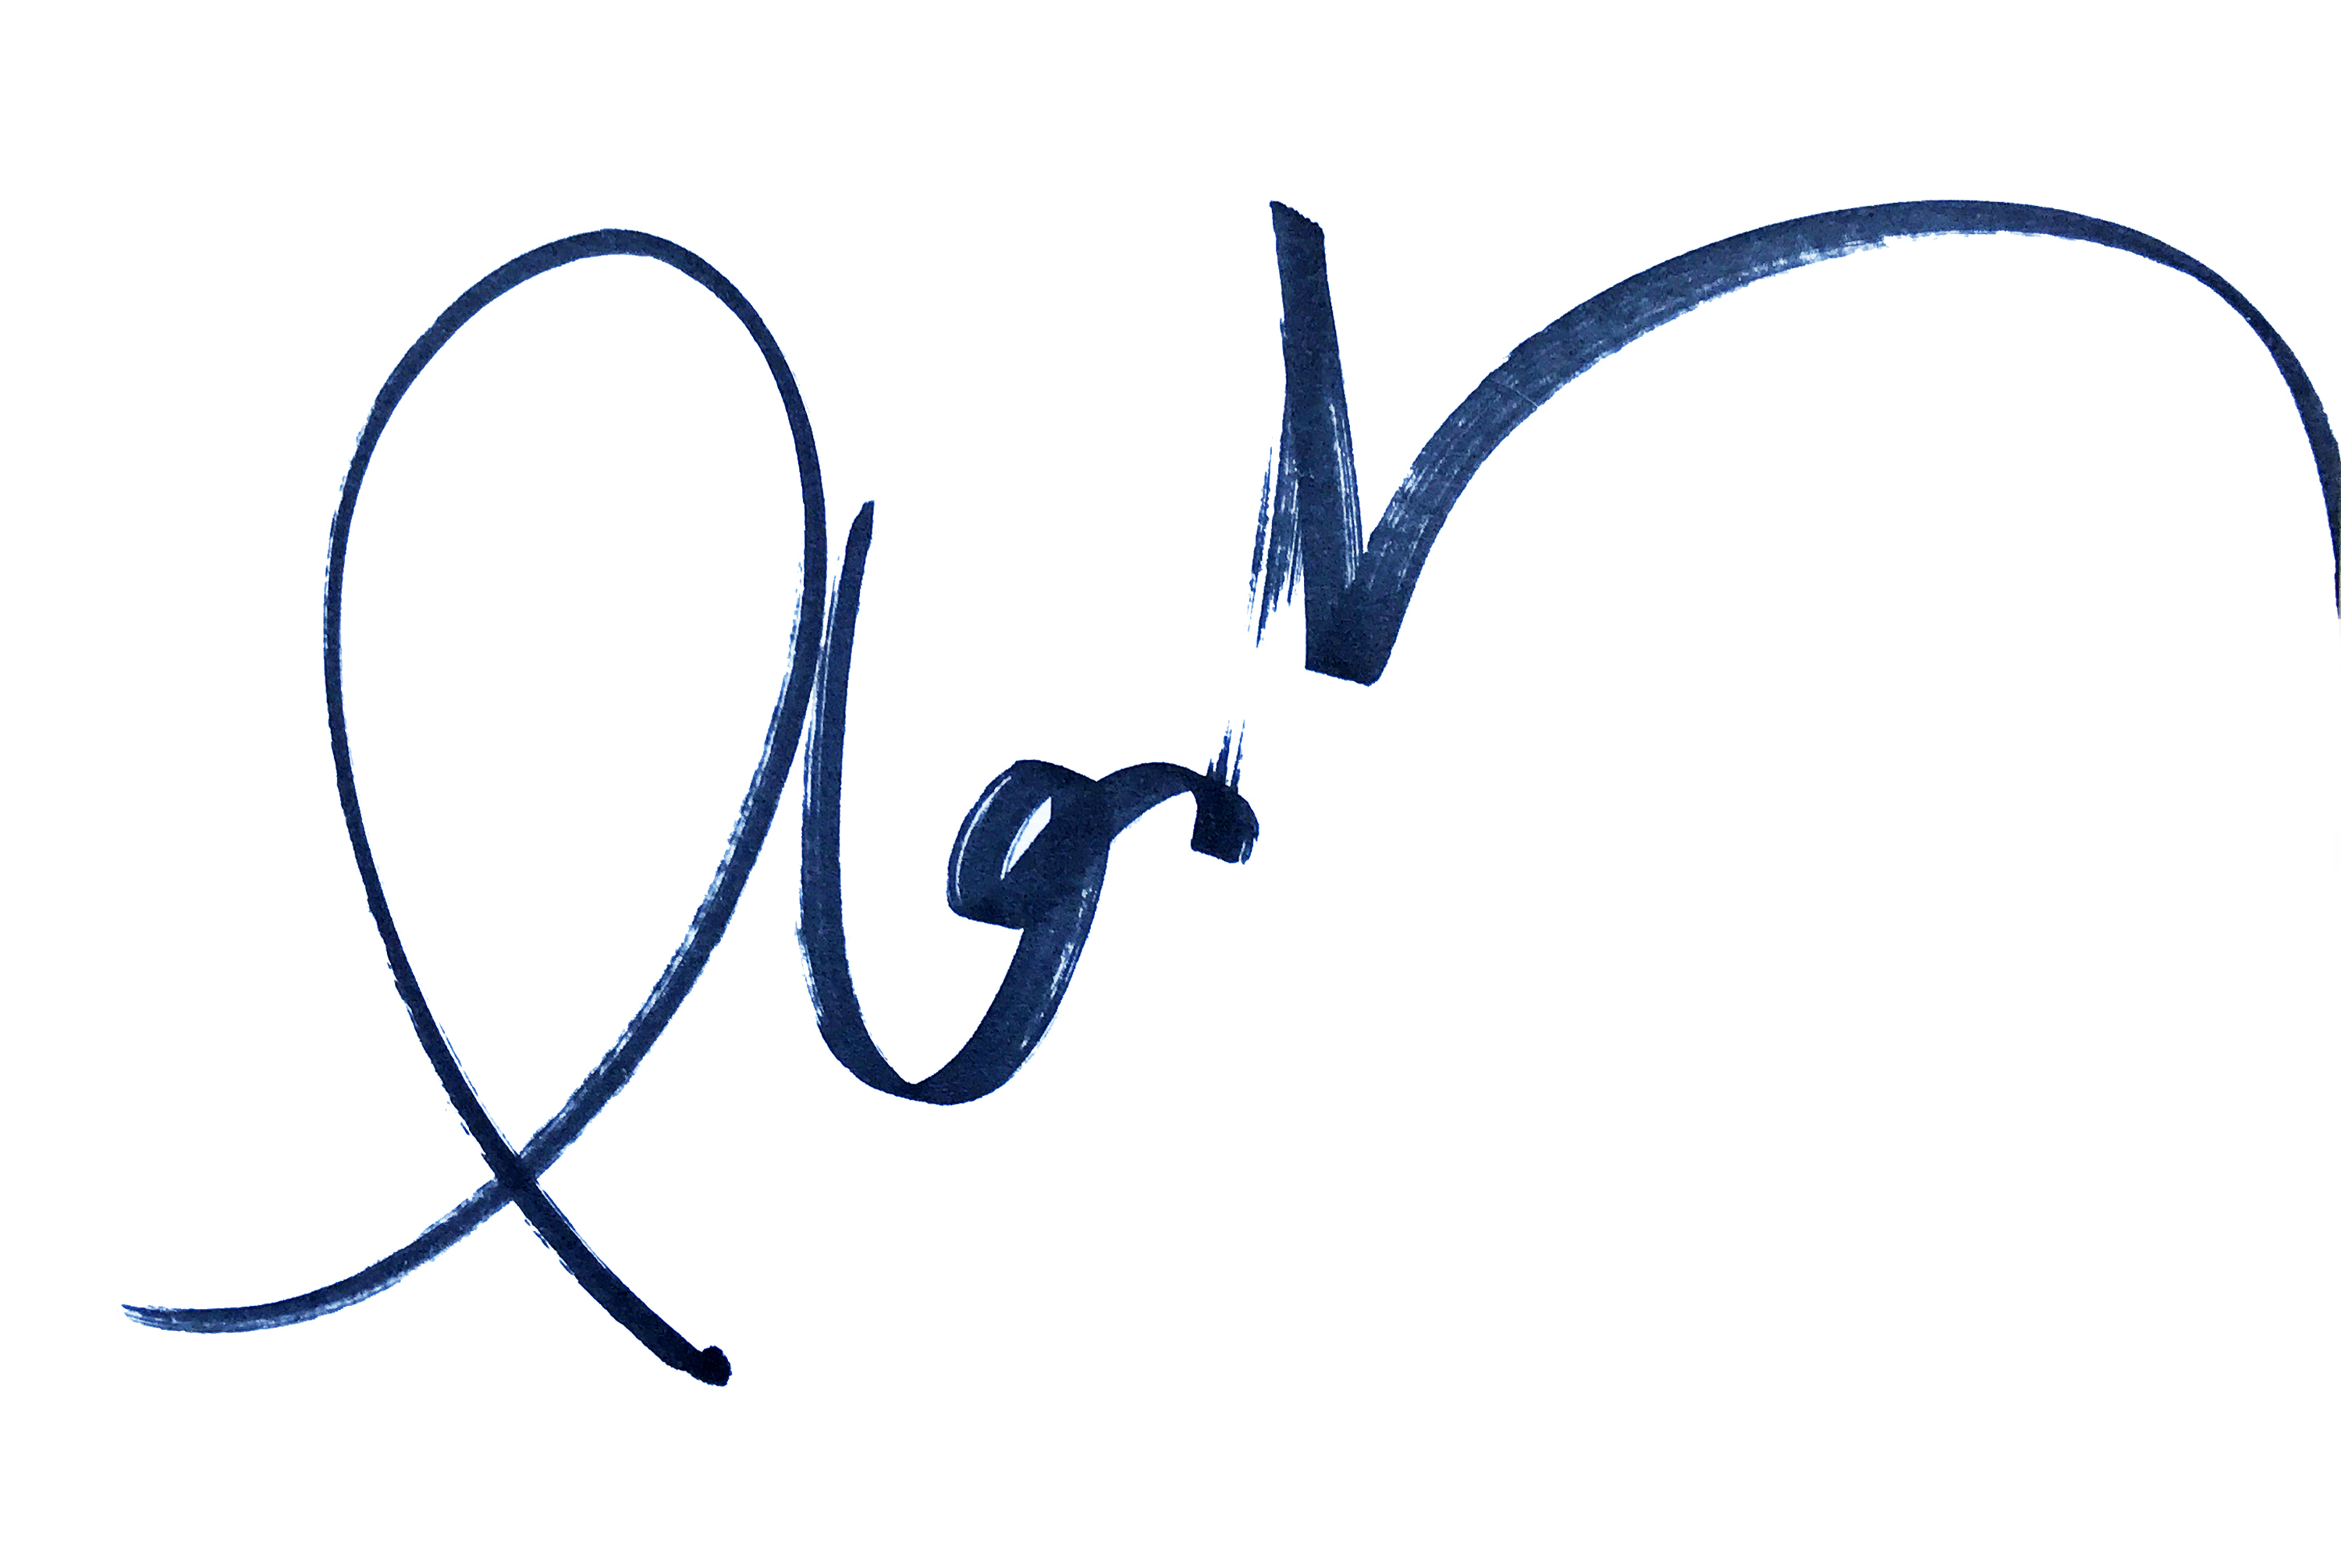 JIM plesh's Signature